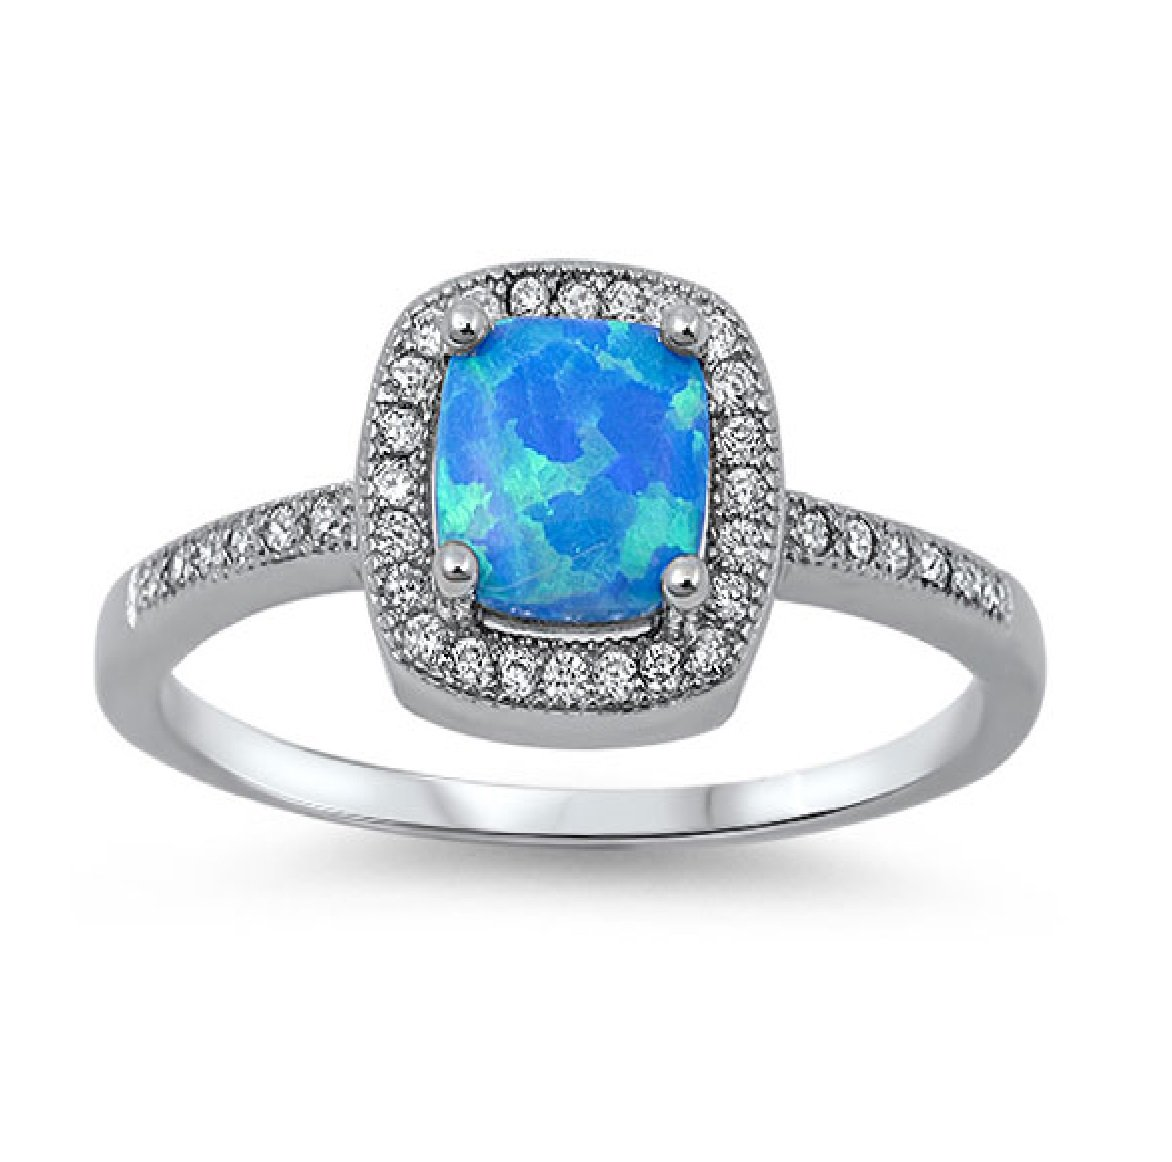 CloseoutWarehouse Blue Simulated Opal Princess Halo Ring Sterling Silver Size 6